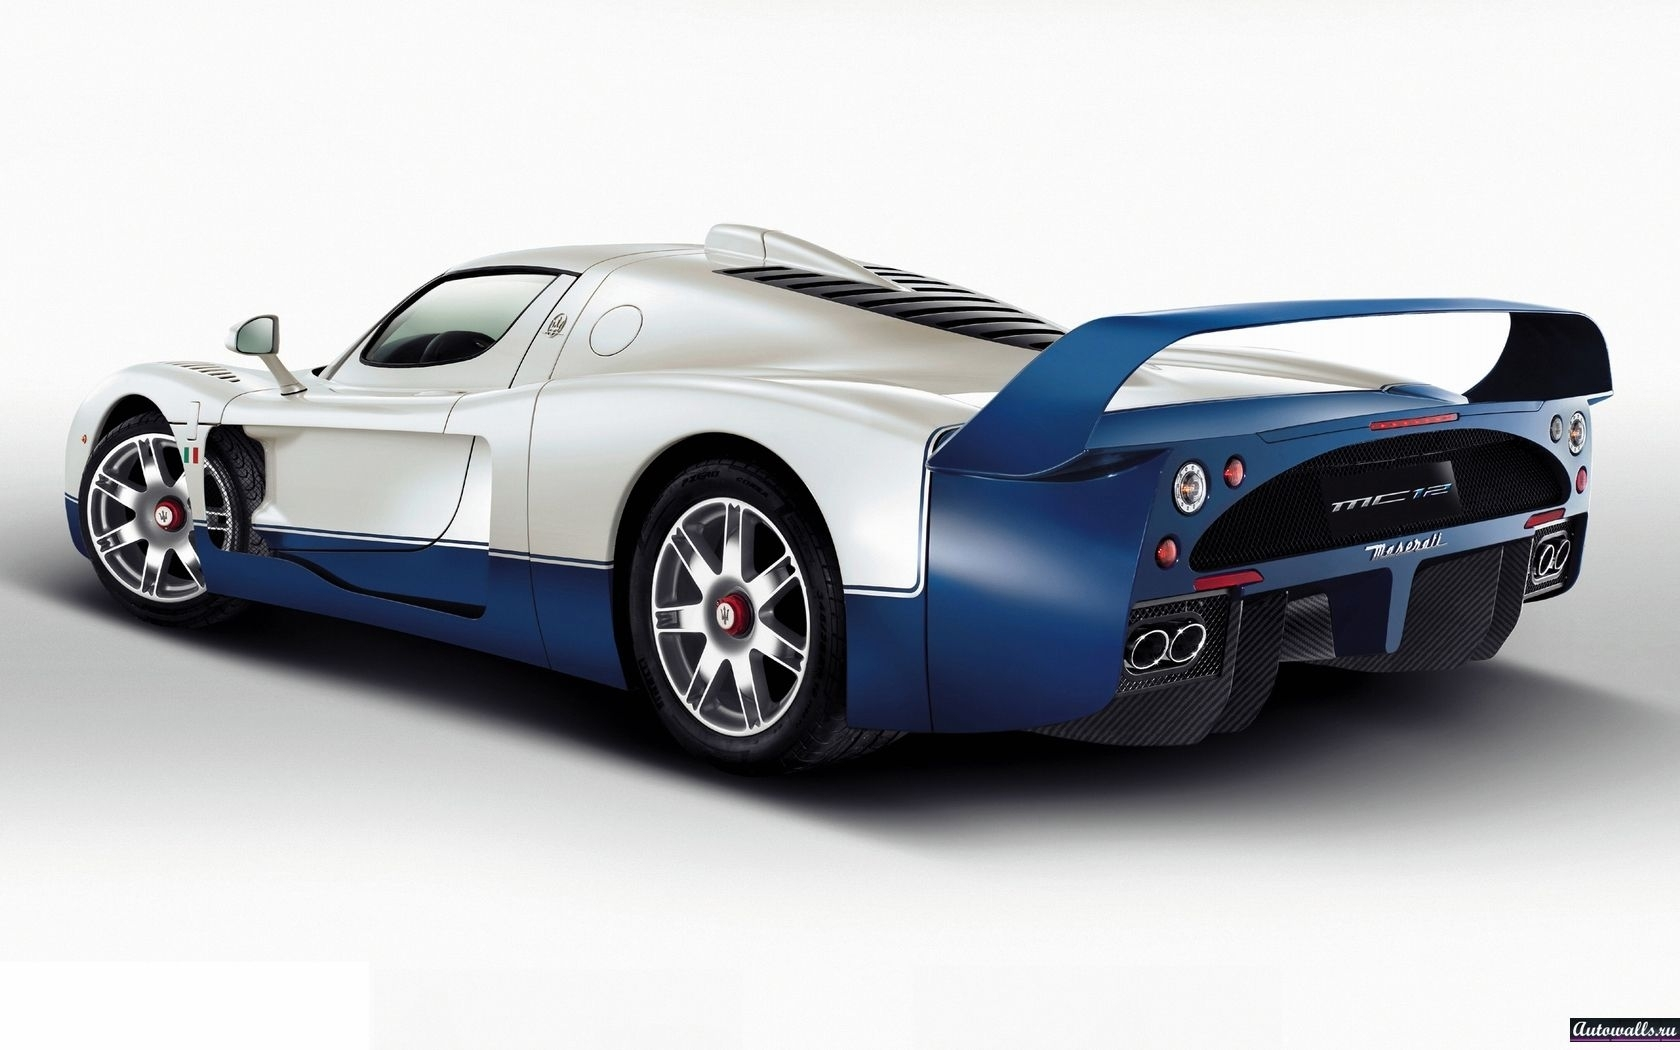 23759 download wallpaper Transport, Auto, Maserati screensavers and pictures for free